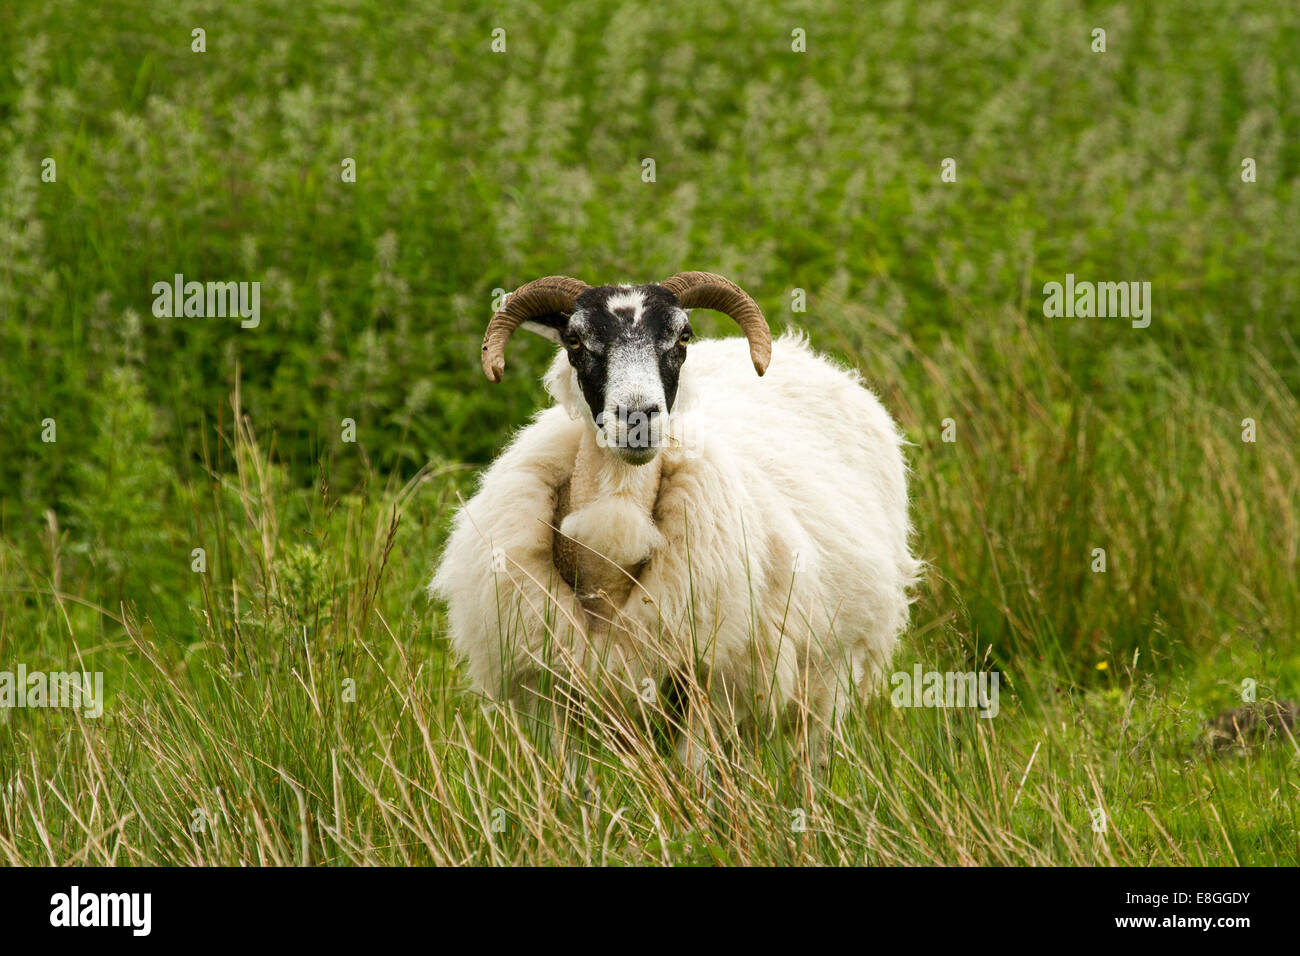 Swaledale sheep, an ancient breed, with long thick white wool, black face, and long curved horns among emerald grass, - Stock Image